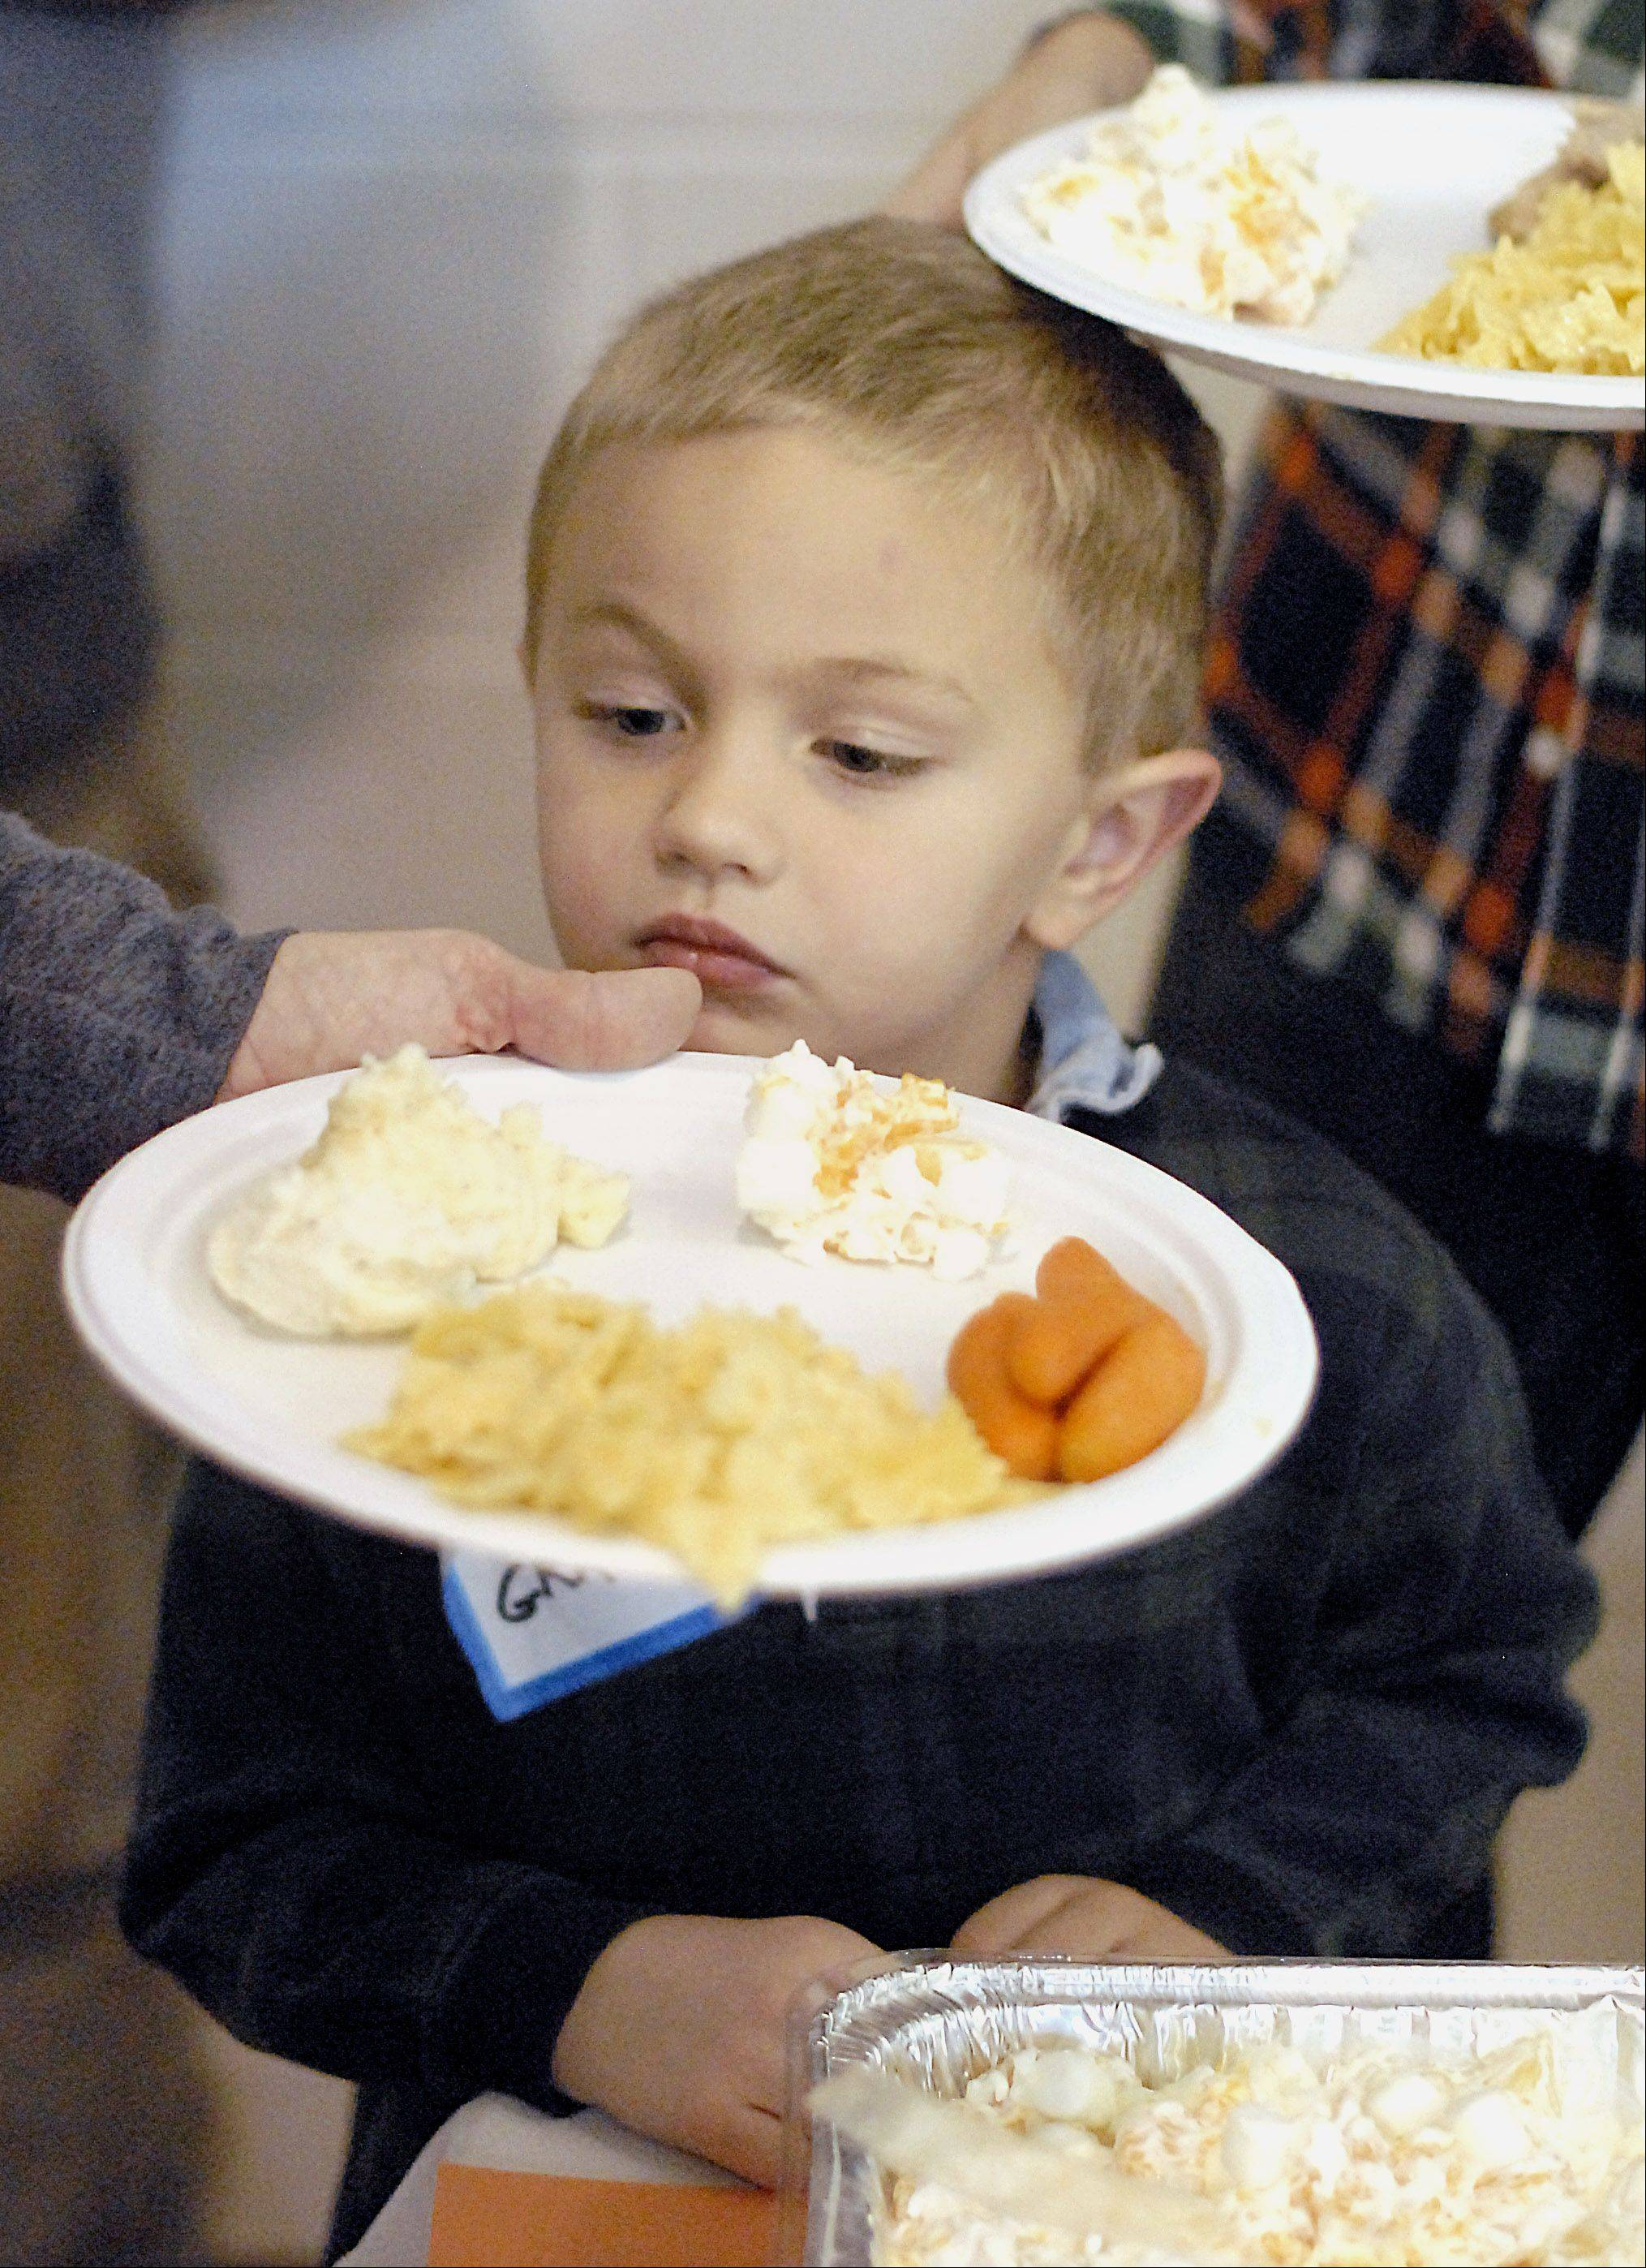 Grady Babcock, 4, of St. Charles watches at his mom, Jill, loads his plate at the Lazarus House's annual Thanksgiving Day dinner at the Salvation Army in St. Charles.